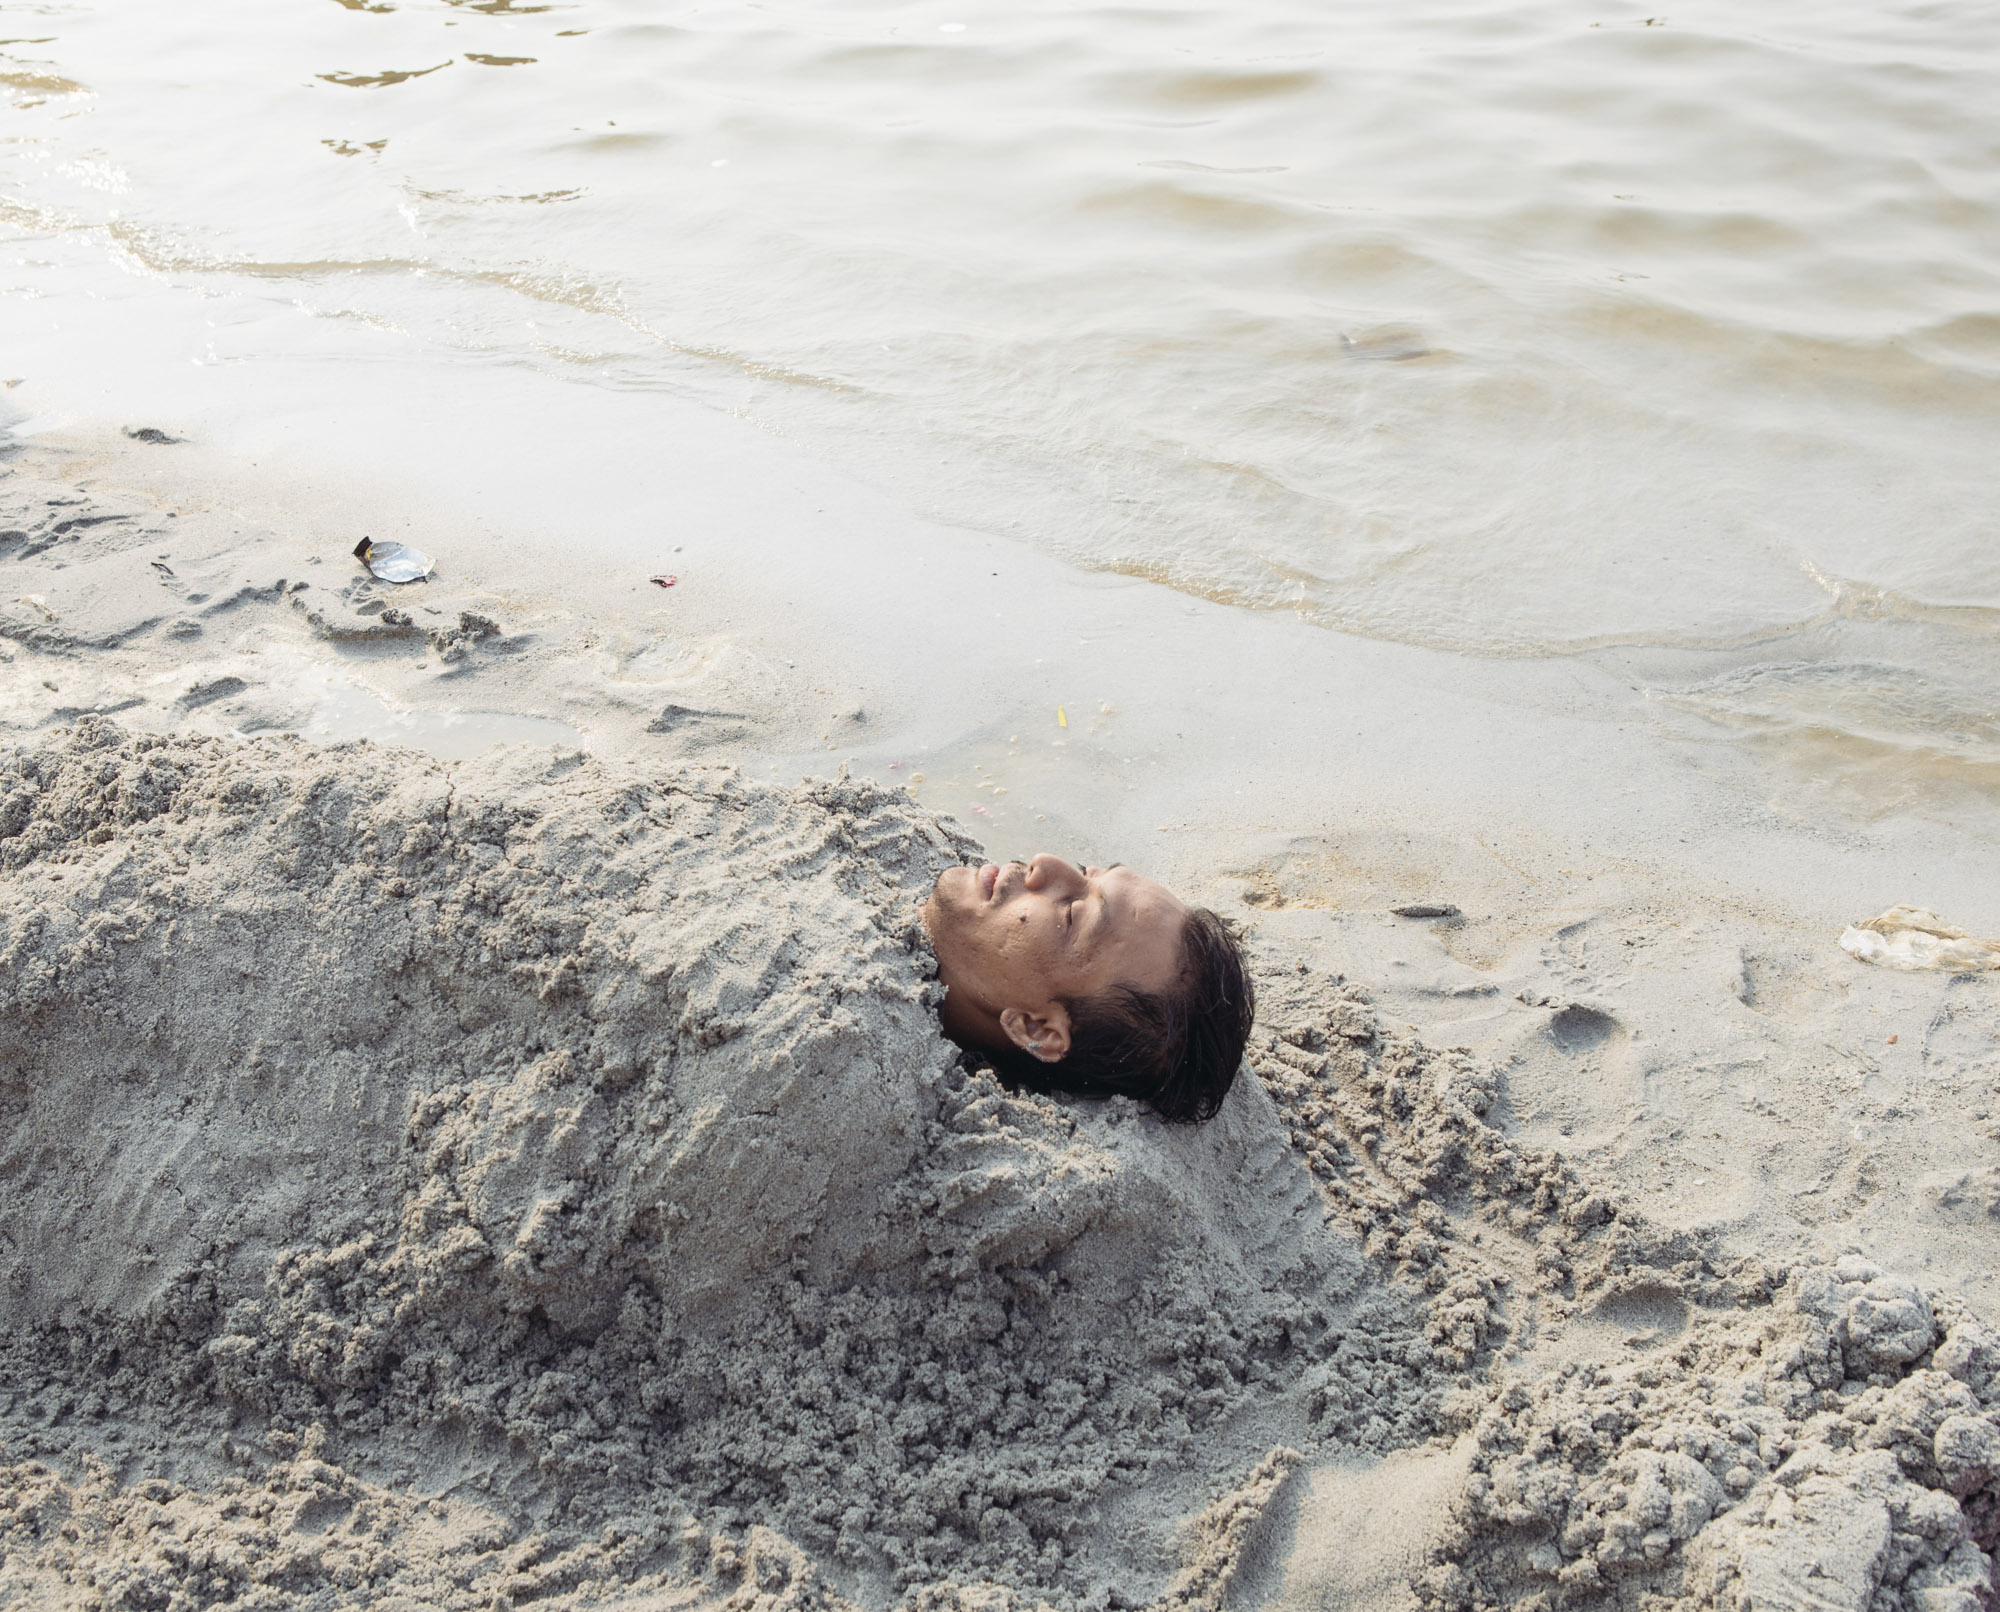 A man buries himself in the sand at Ancol Beach in North Jakarta. Ancol is popular among Jakarta's middle class on weekends, as it offers amusement parks, resorts and the only remaining accessible beach in the city. (Photo by Muhammad Fadli/GroundTruth)